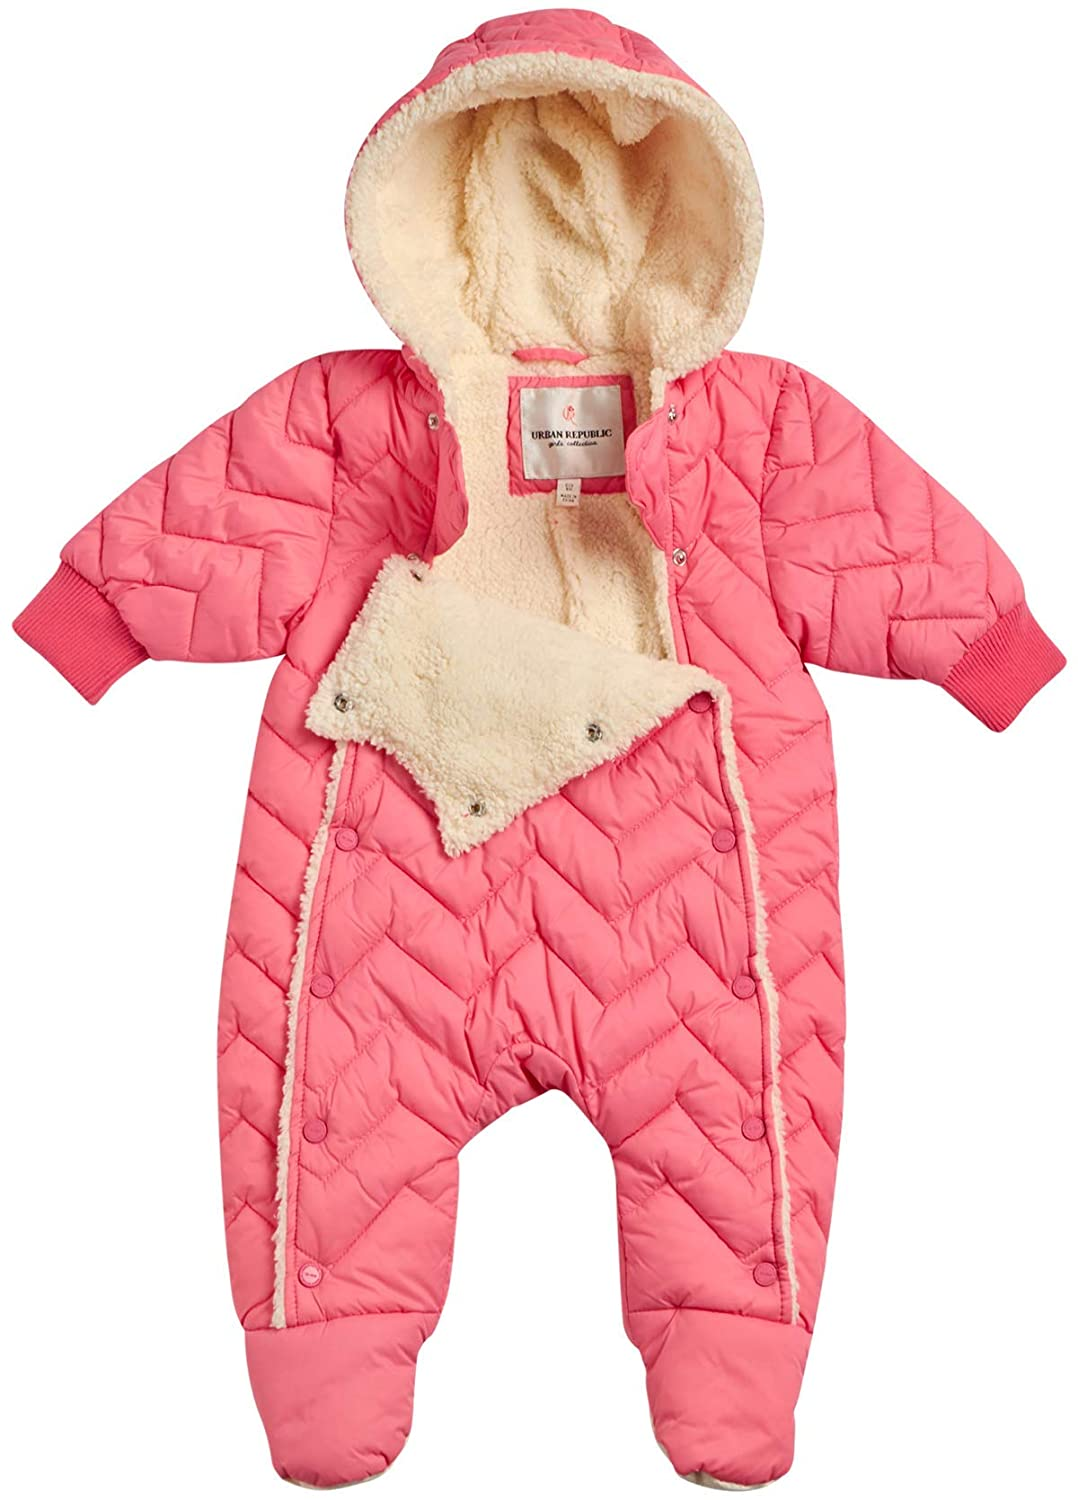 Newborn Urban Republic Baby Girls Pram Snowsuit with Full Sherpa Lining